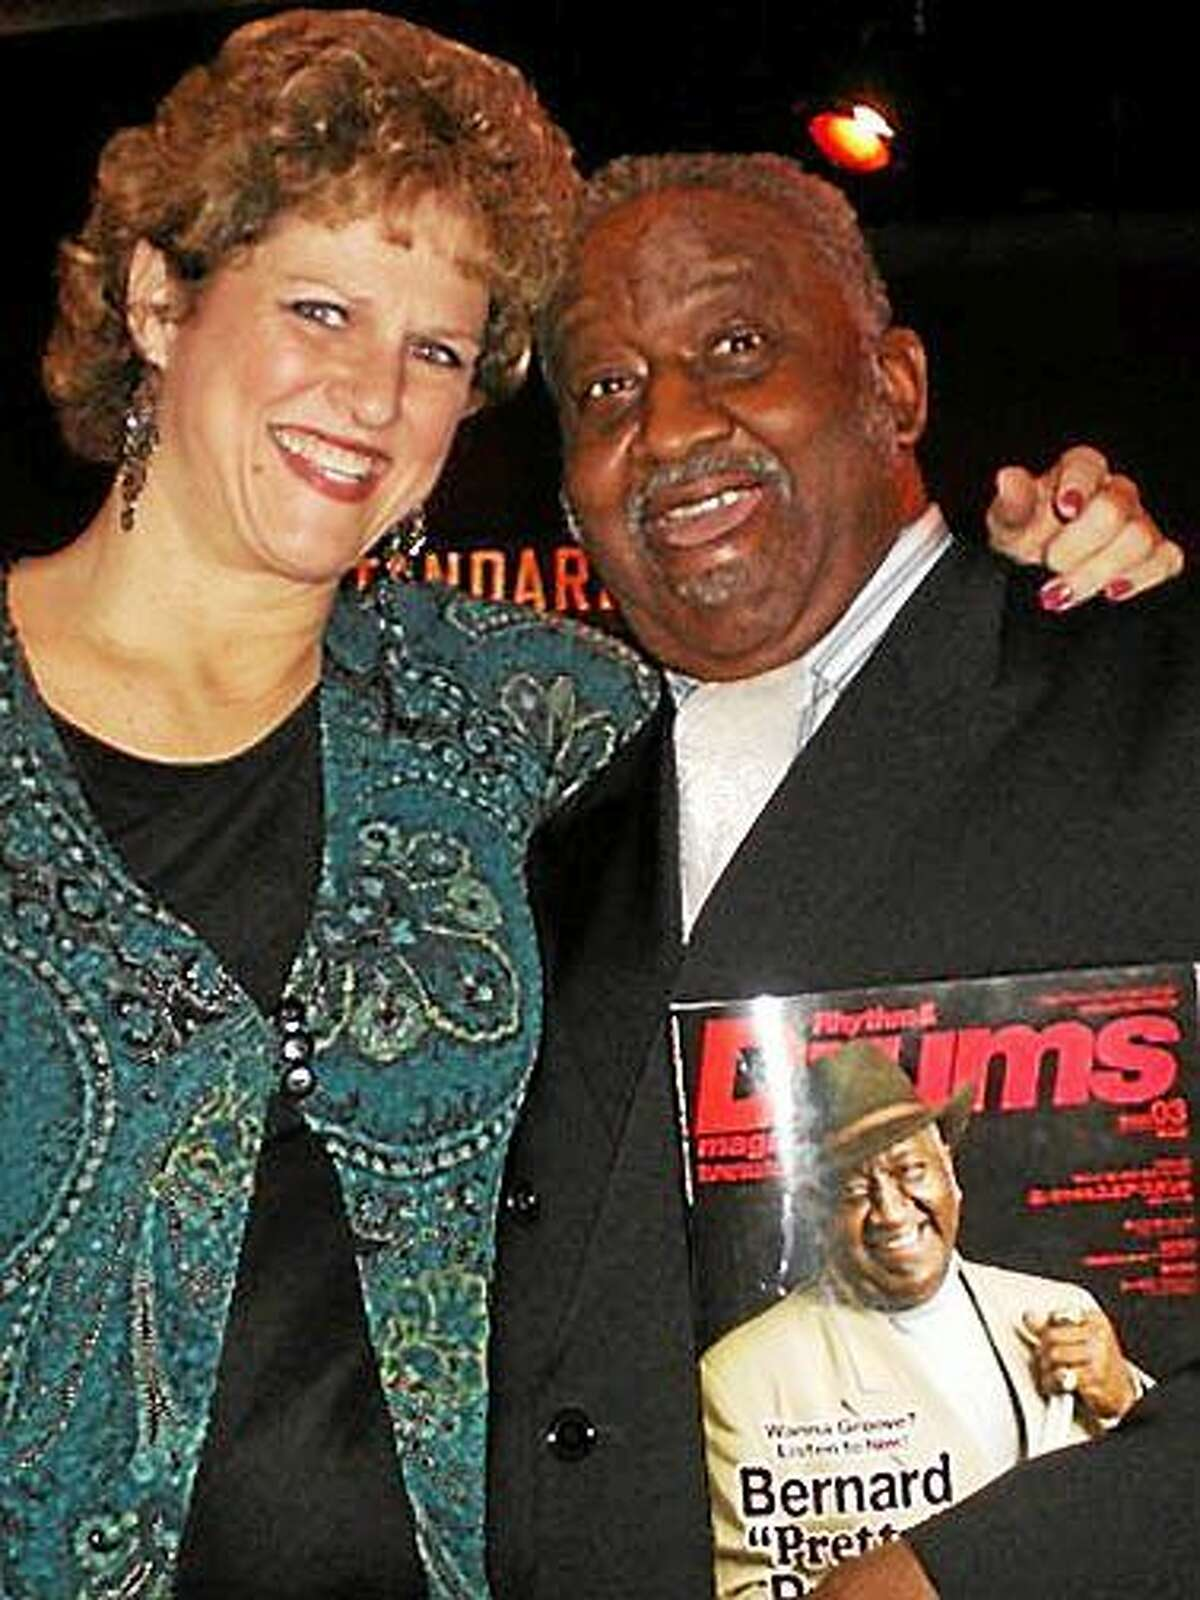 Contributed photo Drummer Bernard Purdie's Book Release party and Jazz Concert, featuring Karen Frisk, will be held at the Buttonwood Tree Feb. 21.